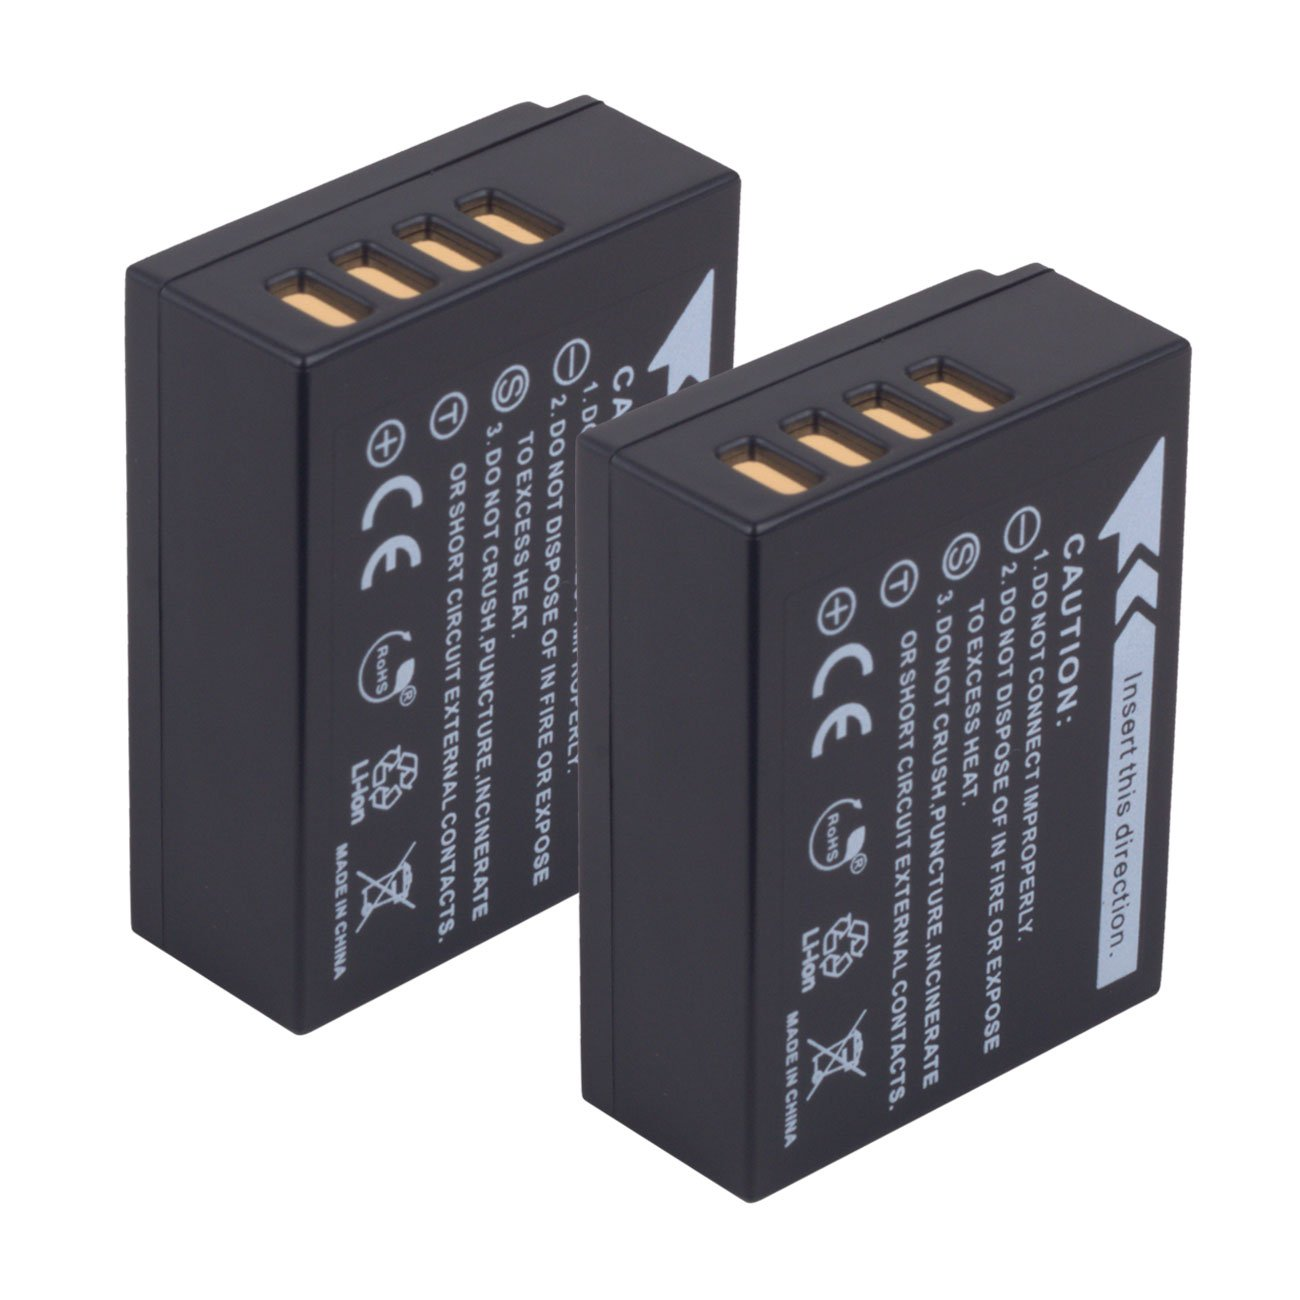 ARCHE NP-W126 NPW126s <2 Pack> Replacement Battery and LCD Dual USB Charger KIT for [Fujifilm FinePix HS30EXR, HS50EXR, X100F X-A1 X-A3 X-A5 X-E1 X-E2 X-E2S X-M1 X-T1 X-T2 X-T10 X-T20 X-Pro1 X-Pro2] by ARCHE (Image #7)